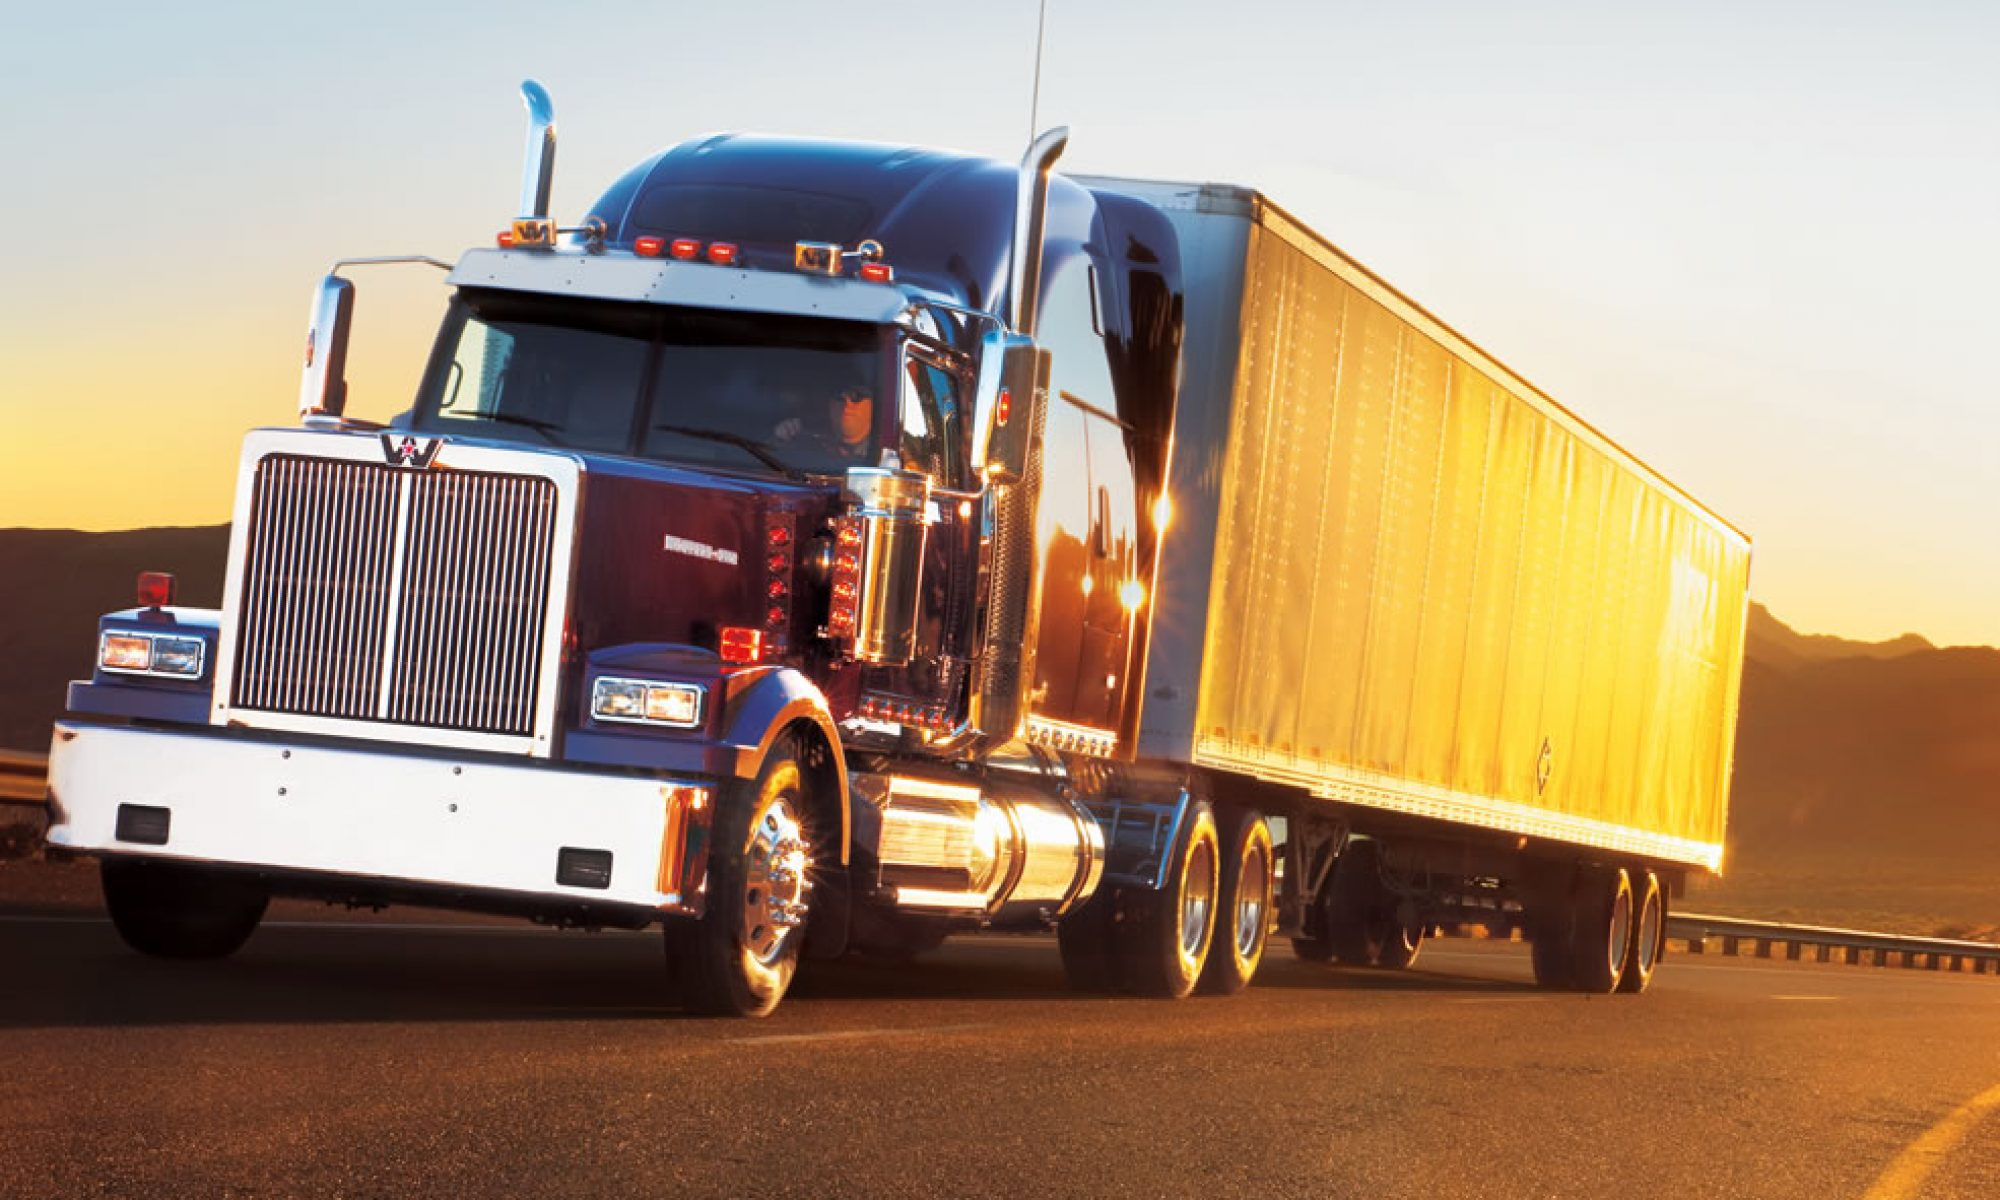 AGS Trucking – Leader in LTL and TL services across the US